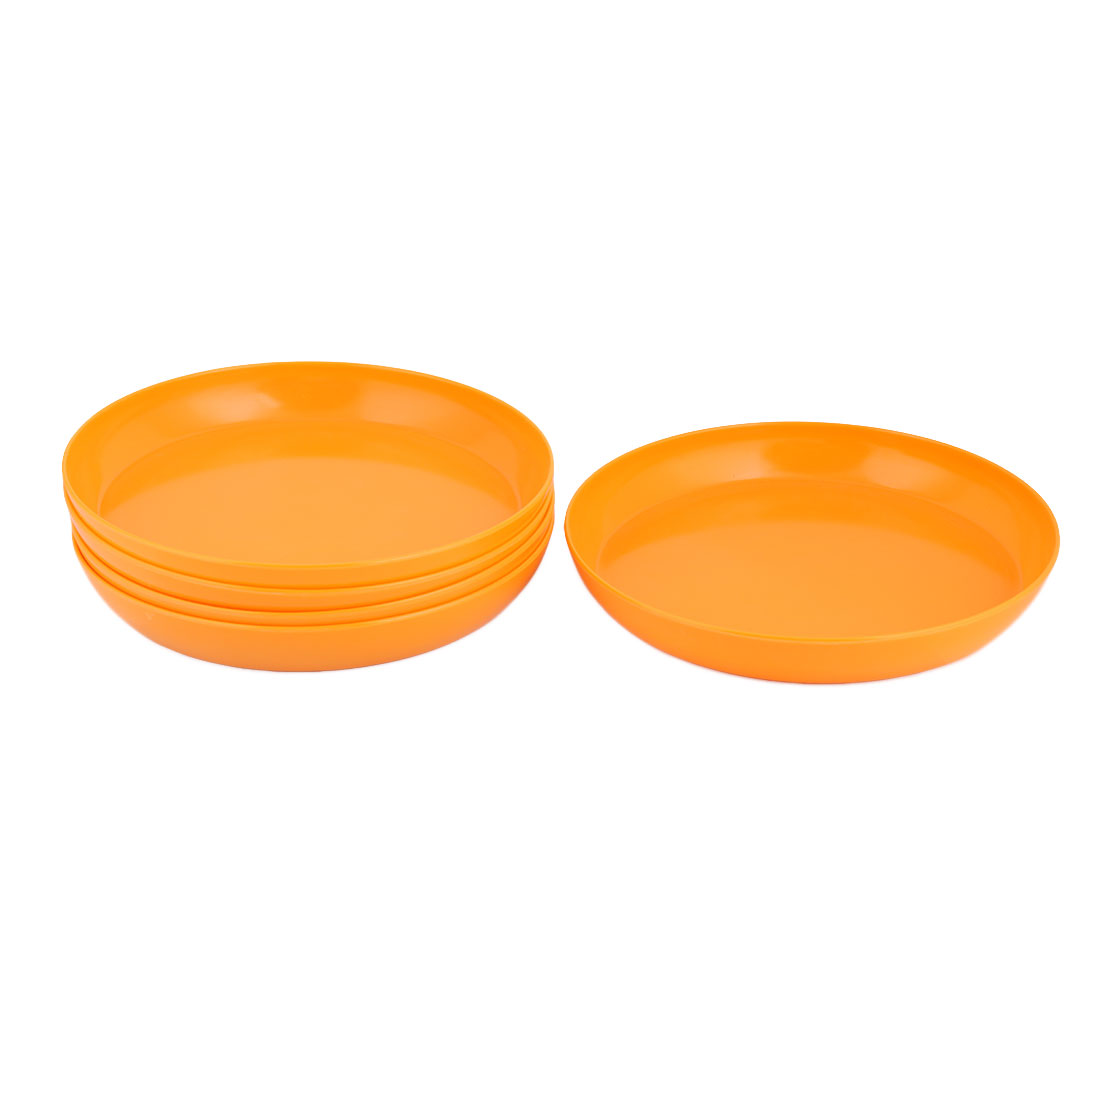 Outdoor Yard Garden Melamine Round Flower Pot Holder Tray Orange 10.2 Inch Dia 5pcs